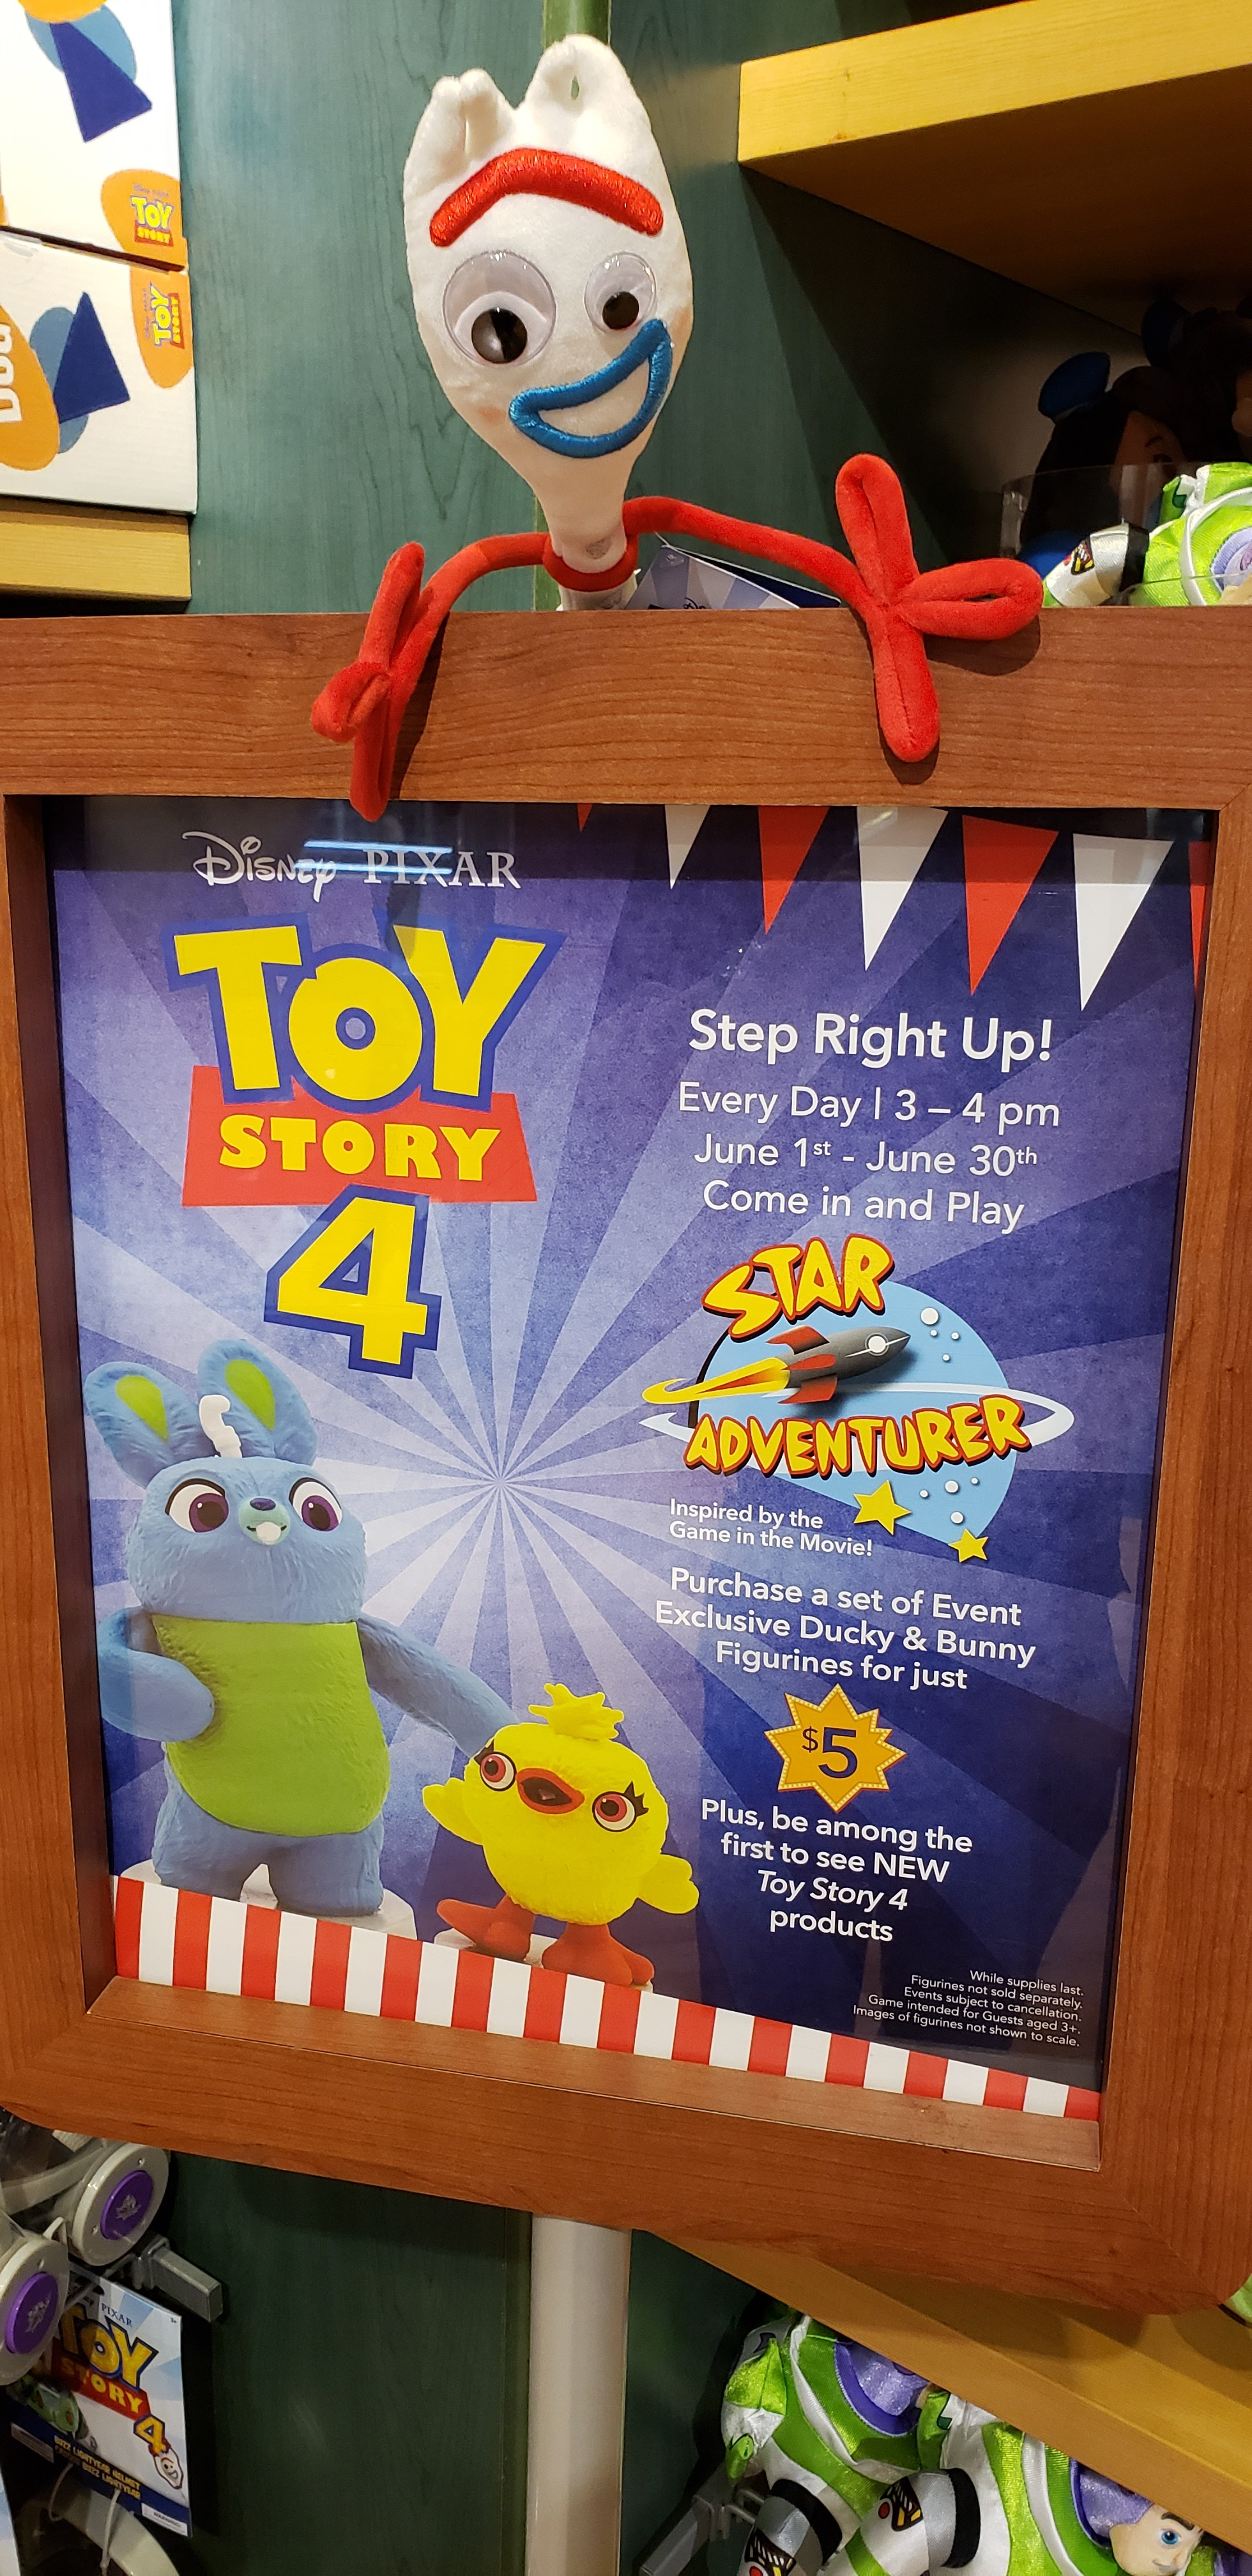 Disney posted of Toy story 4 with two animations.